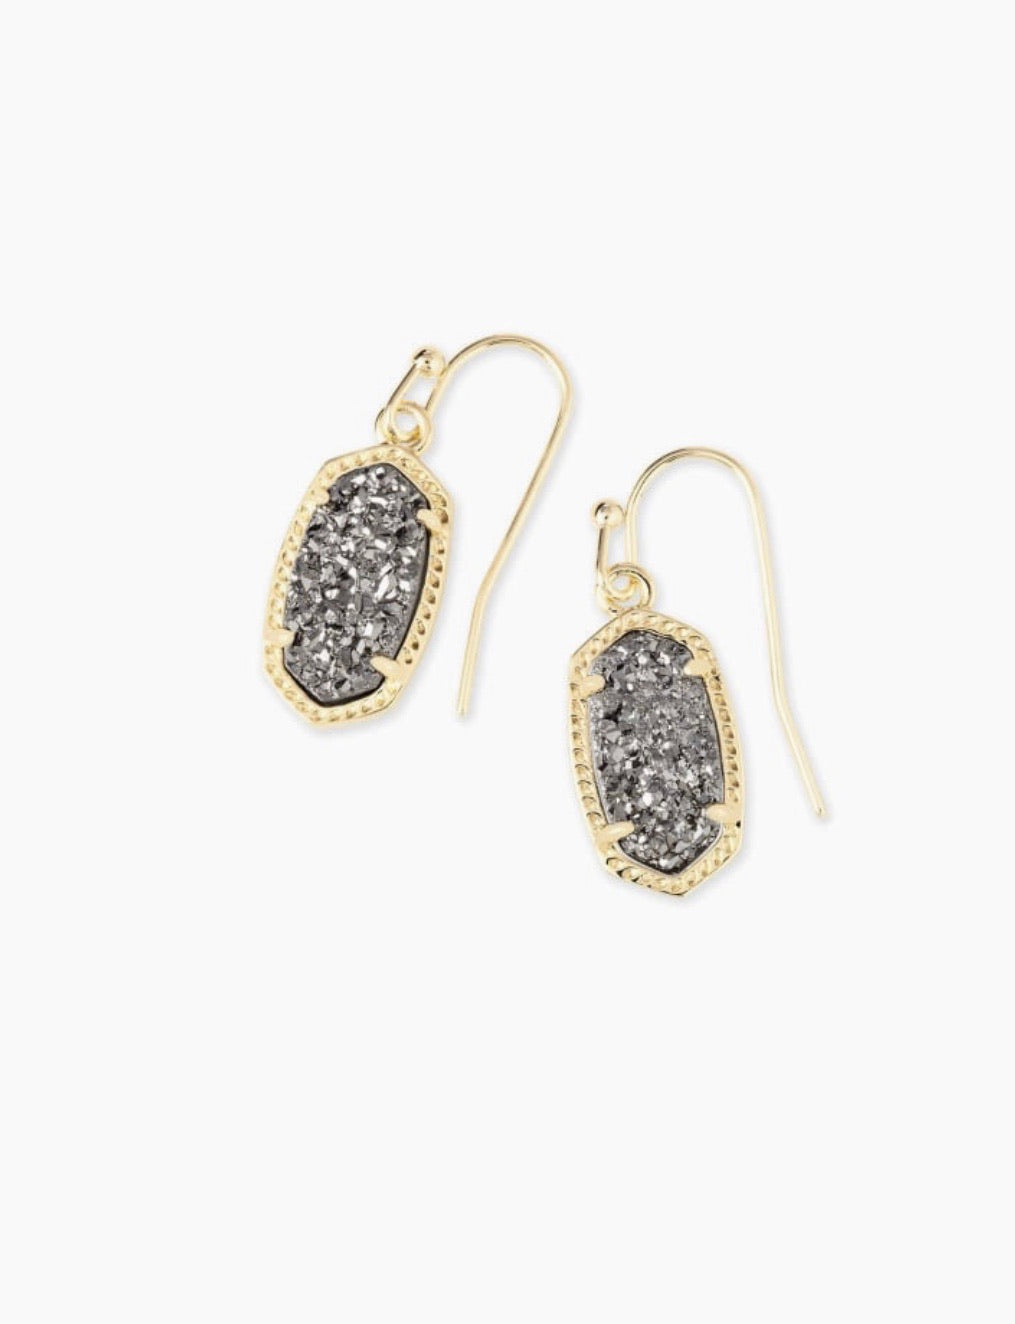 LEE GOLD DROP EARRINGS - PLATINUM DRUSY